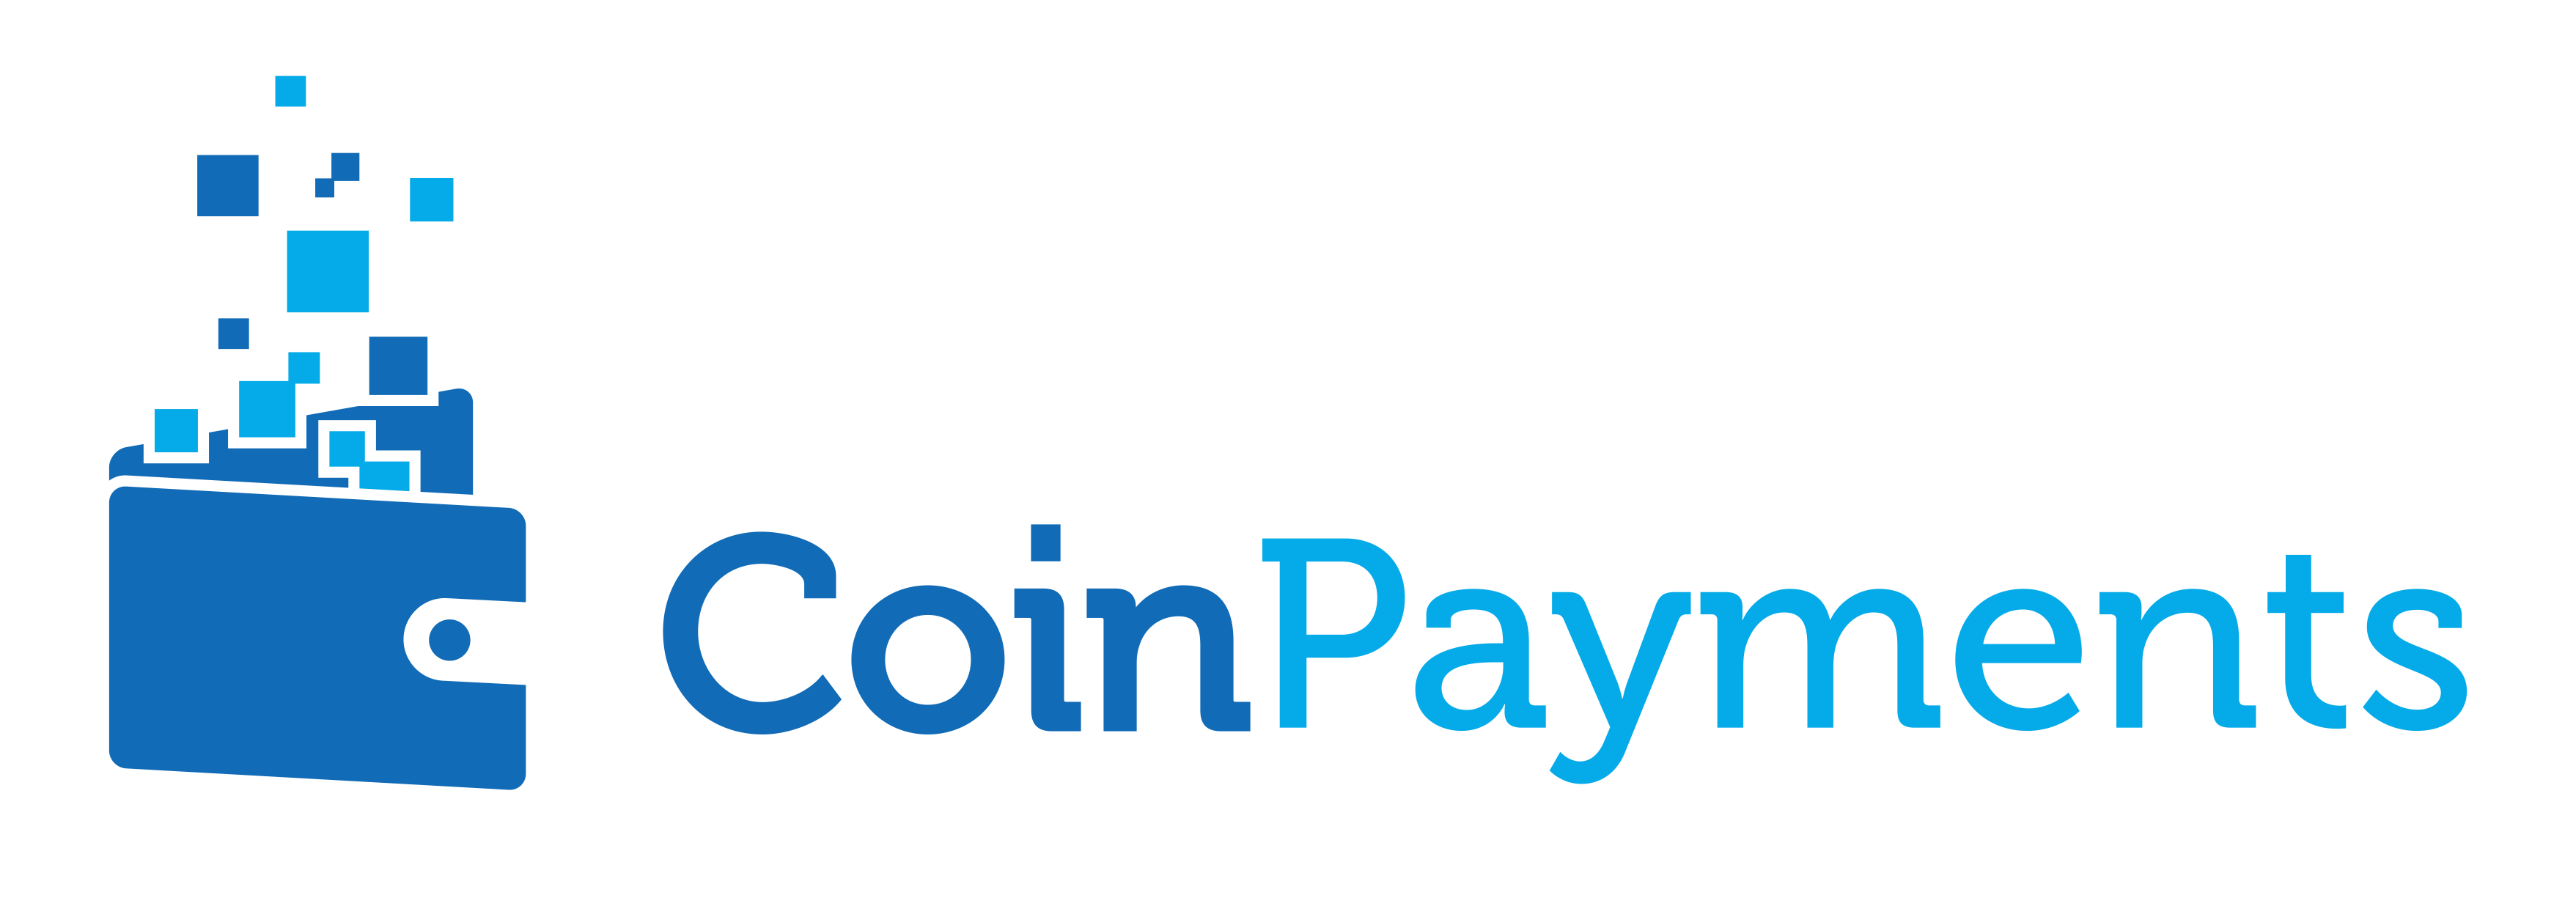 Cryptocurrency payment service providers Payment gateway providing buy now buttons, shopping carts, and more to accept Bitcoin, Litecoin, and other cryptocurrencies/altcoins on your website/online store. https://www.coinpayments.net/